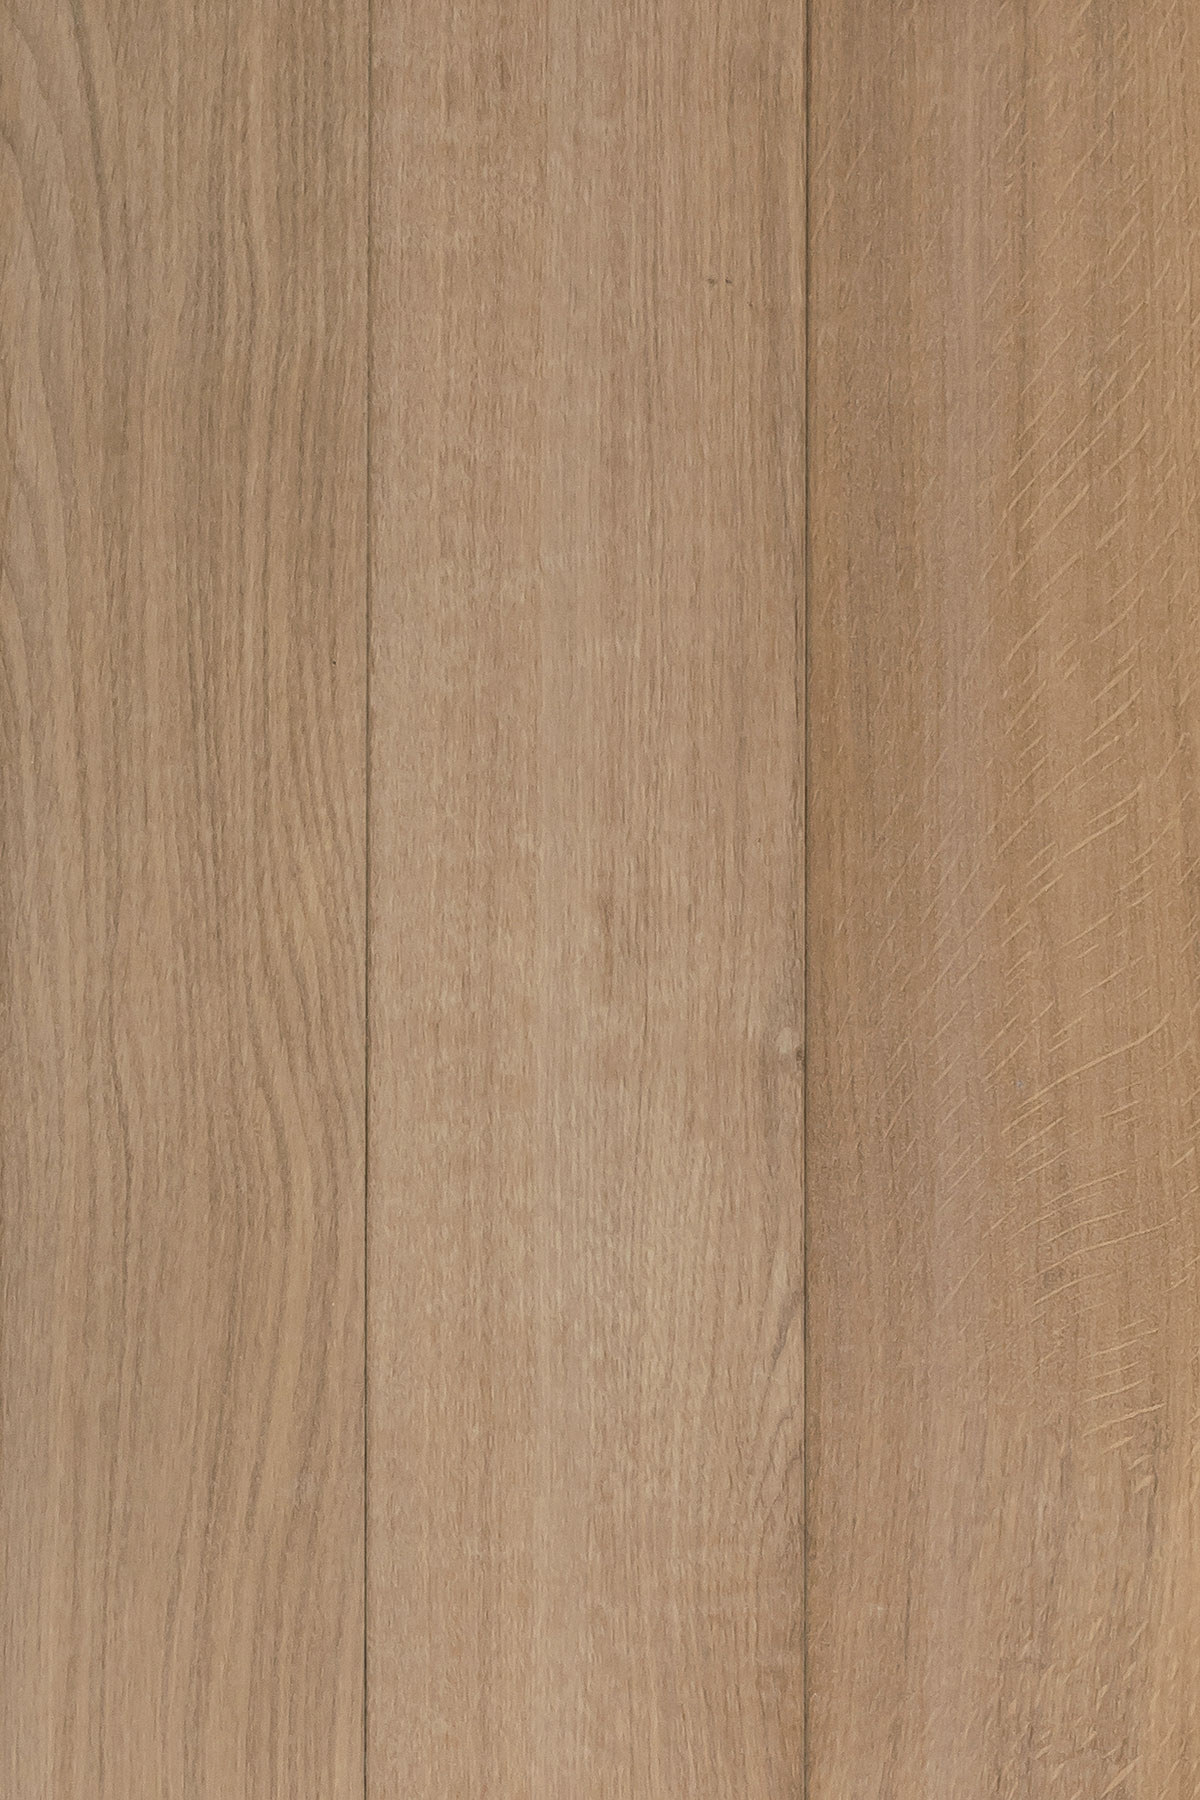 royal-white-oak---Code-RO-210